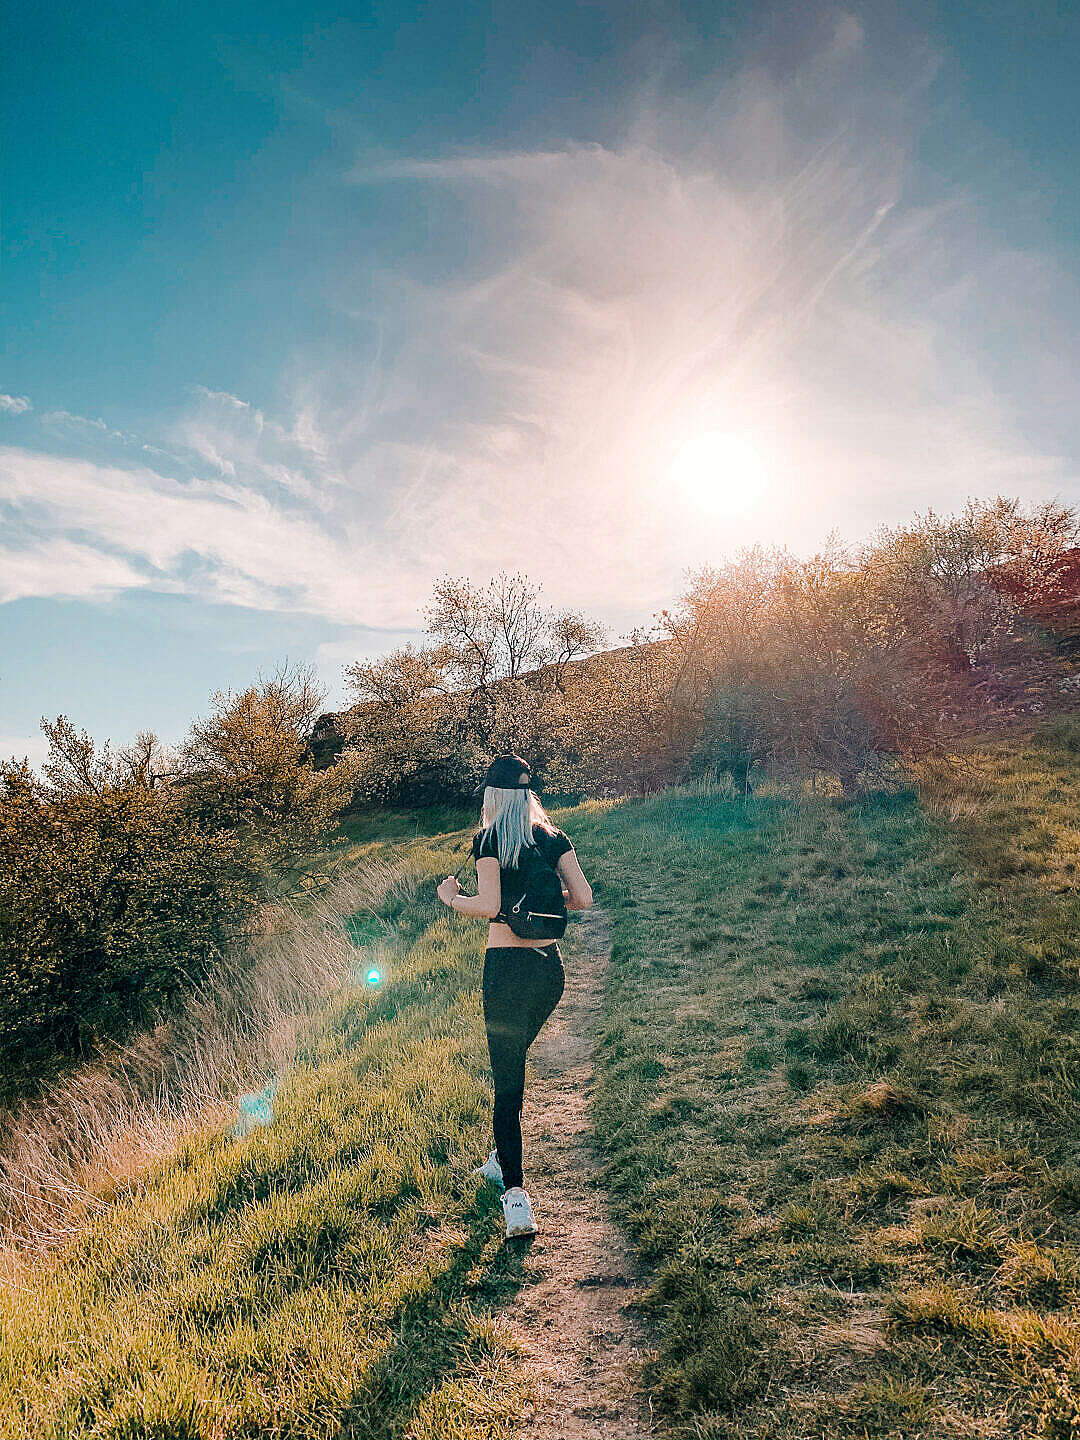 Download Young Blonde Woman On a Walk in Nature FREE Stock Photo